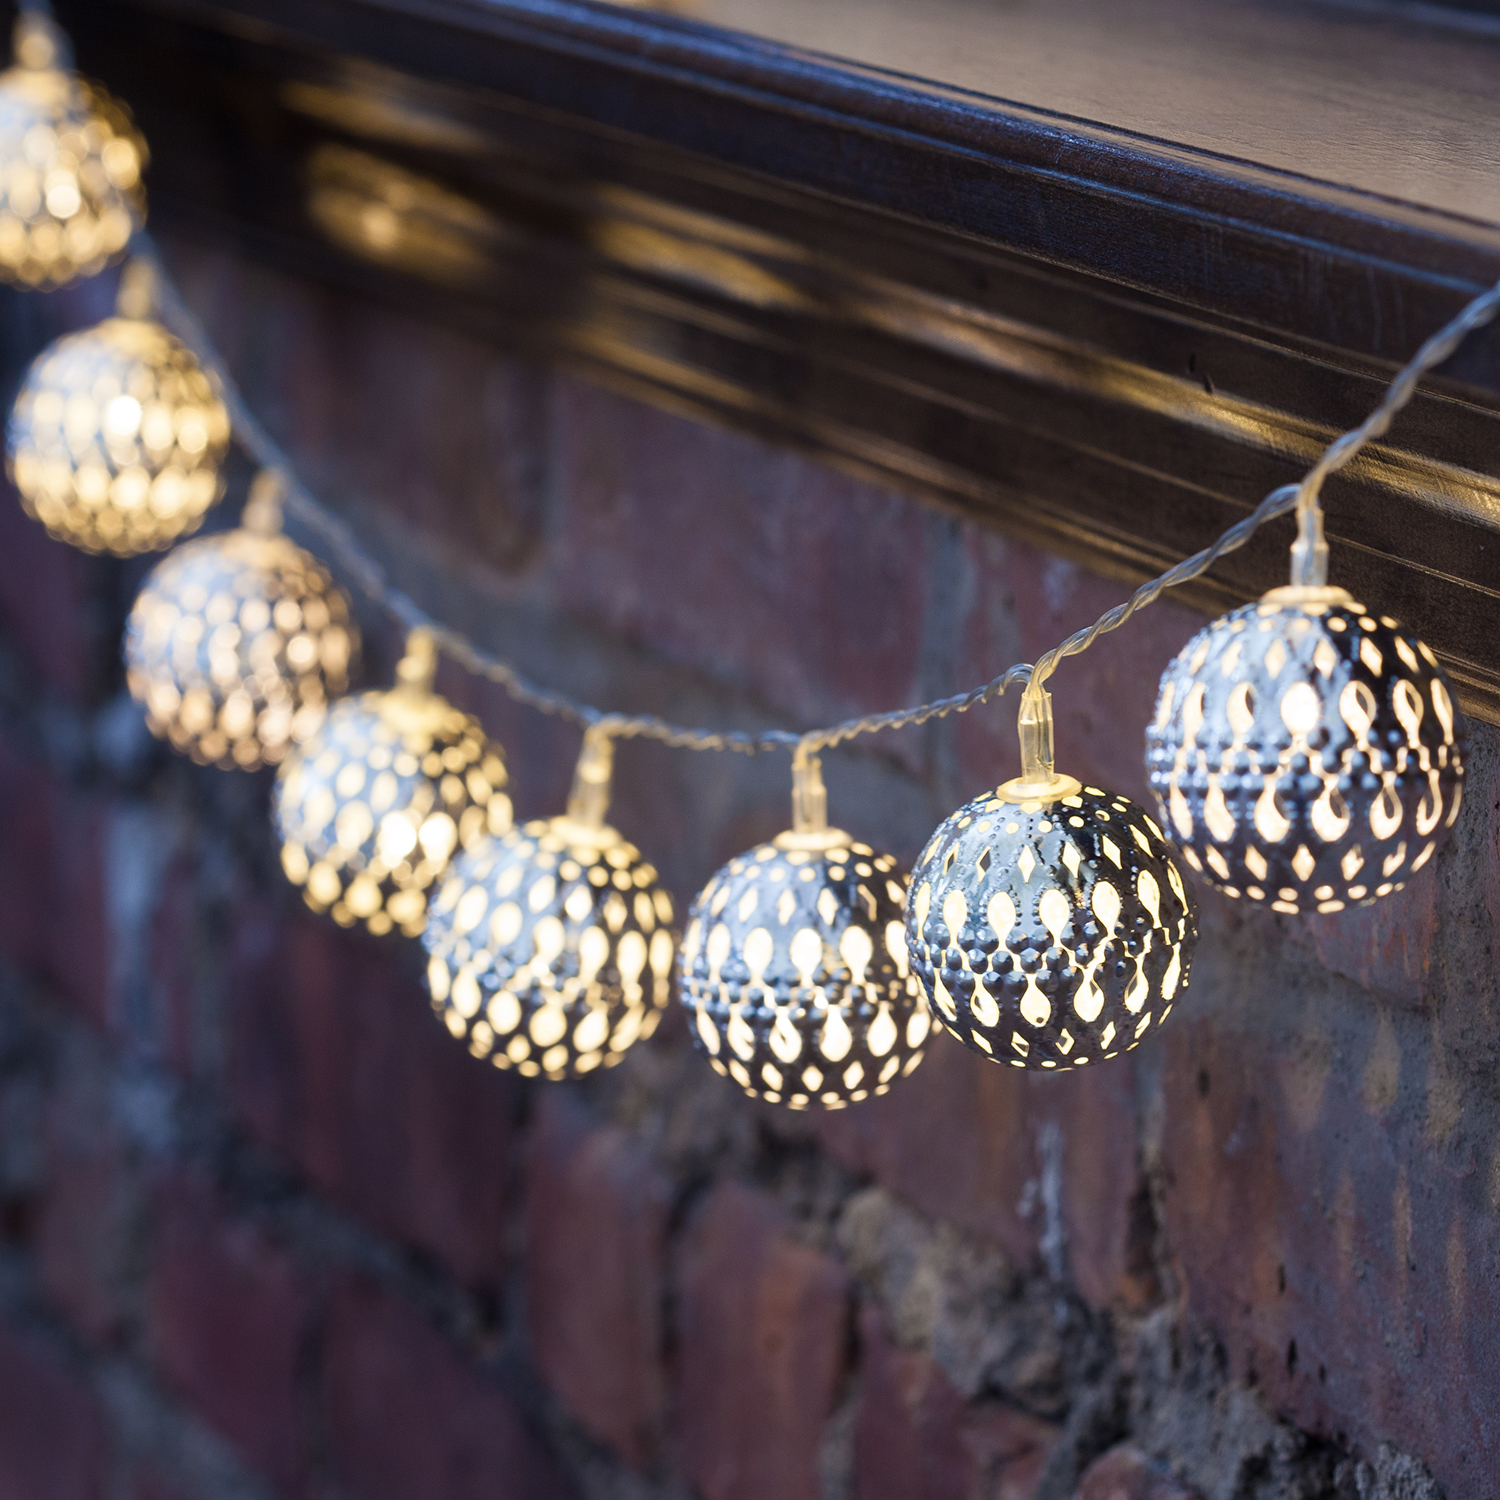 Kikkerland Moroccan String Lights : Lights.com String Lights Battery String Lights Moroccan Bauble Battery Operated String ...